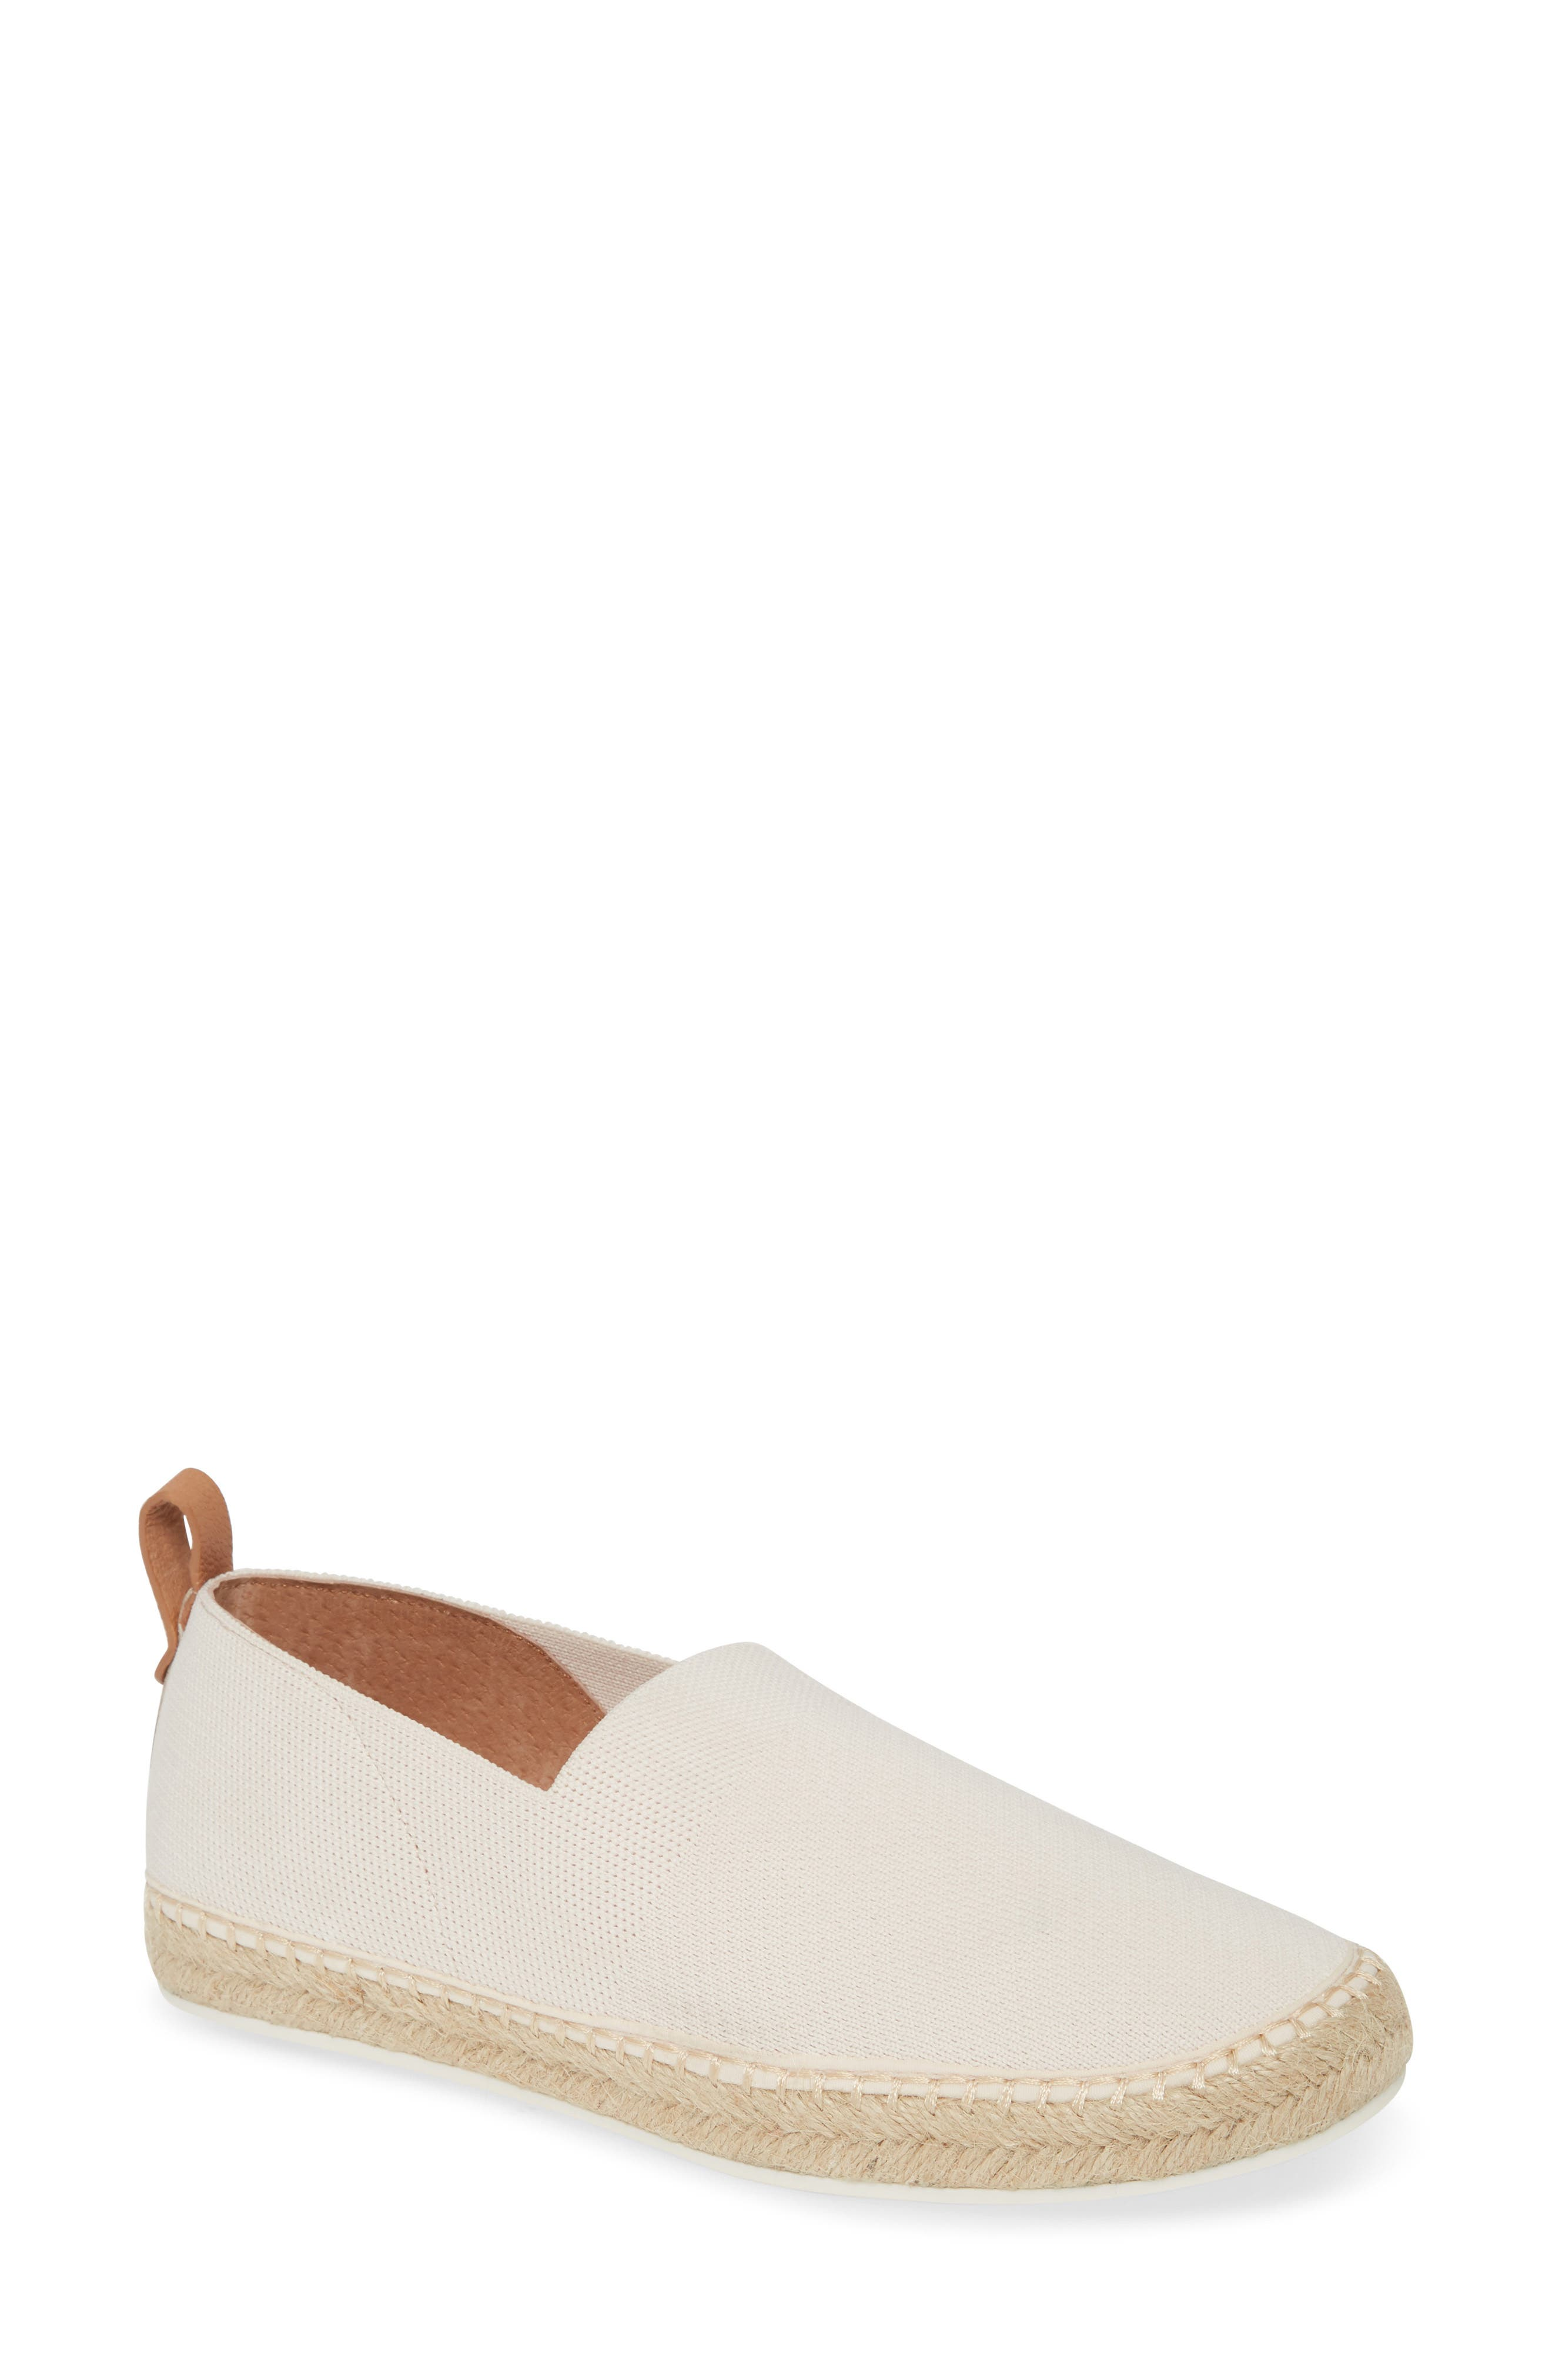 Gentle Souls by Kenneth Cole Shoes Sale